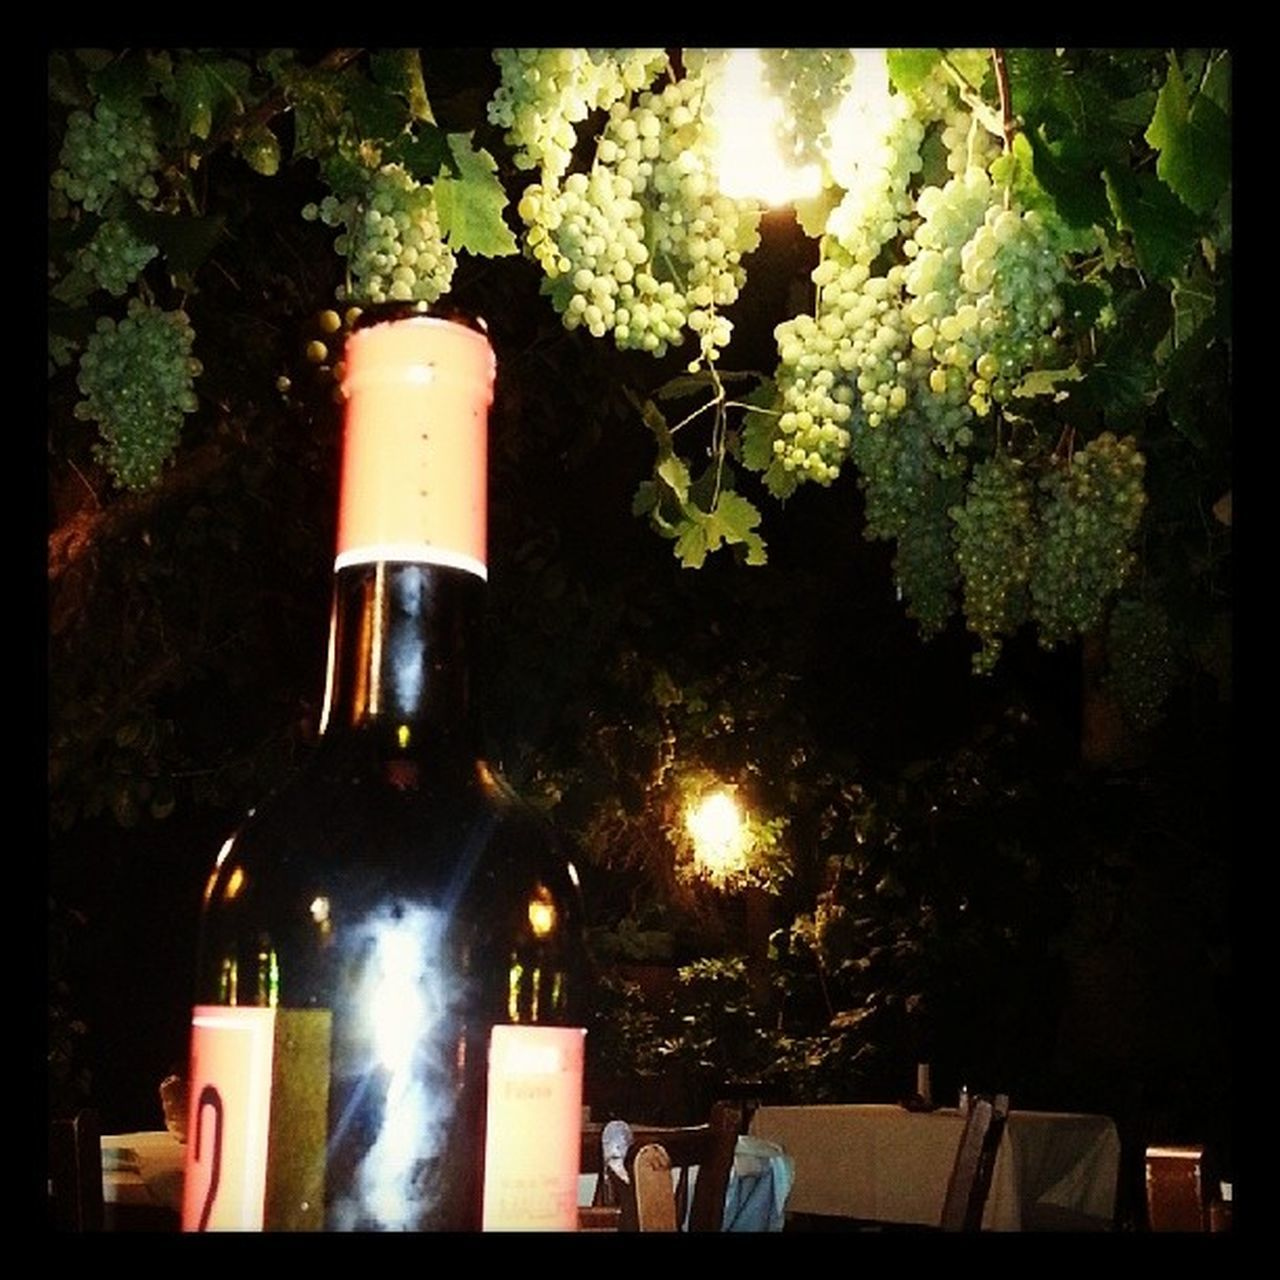 bottle, wine bottle, wine, no people, tree, outdoors, alcohol, cork - stopper, close-up, night